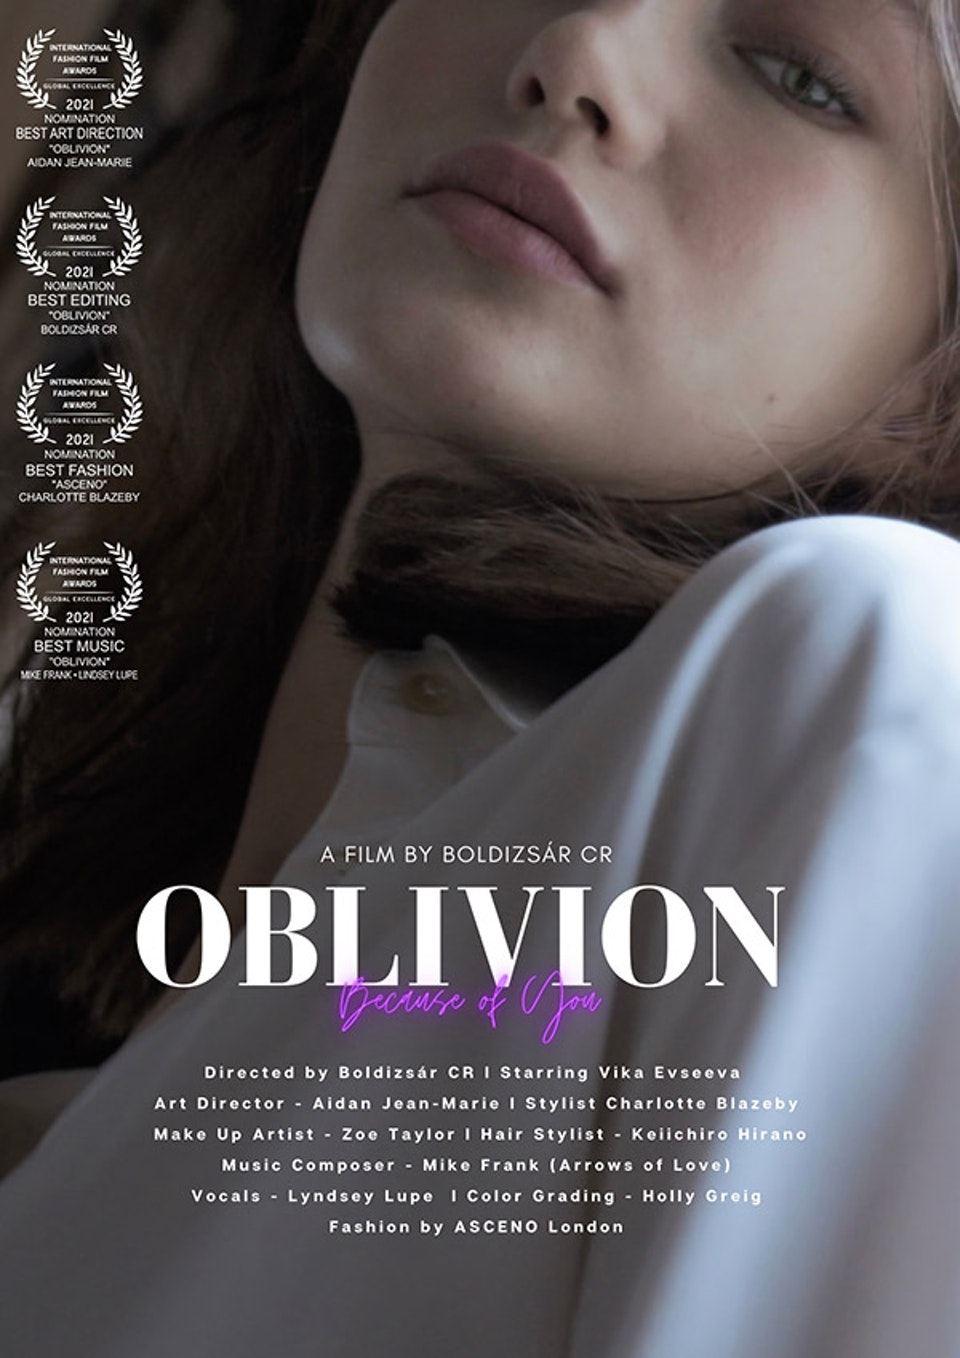 Oblivion (Because of You) - Fashion Film